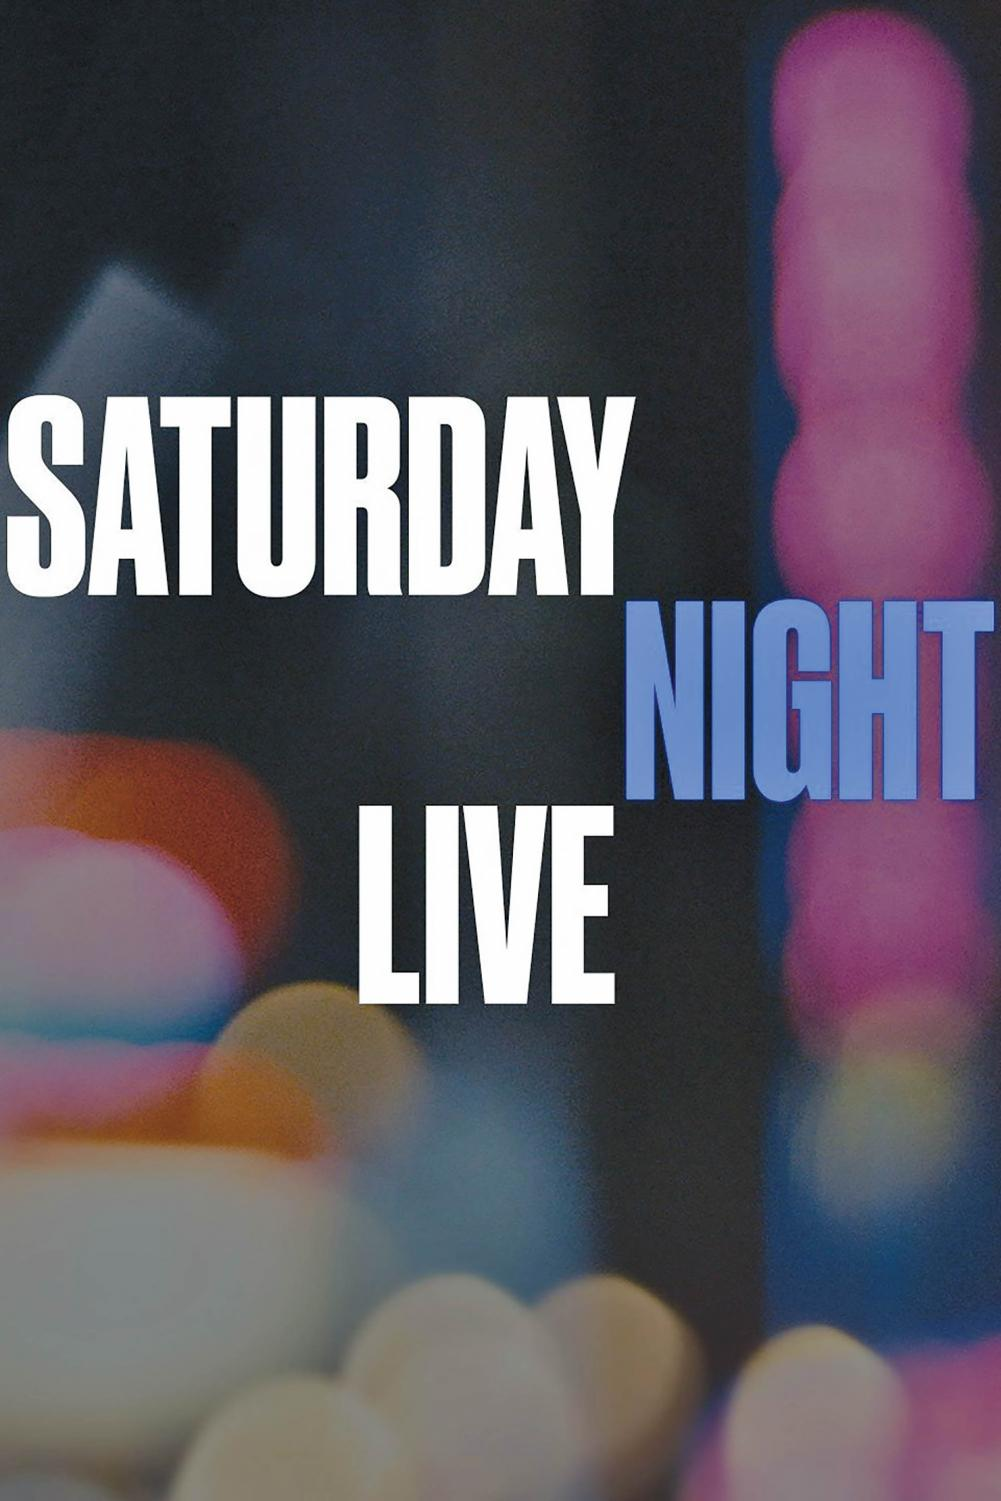 Saturday Night Live first aired on Oct. 11, 1975 and is currently in its 44th season.